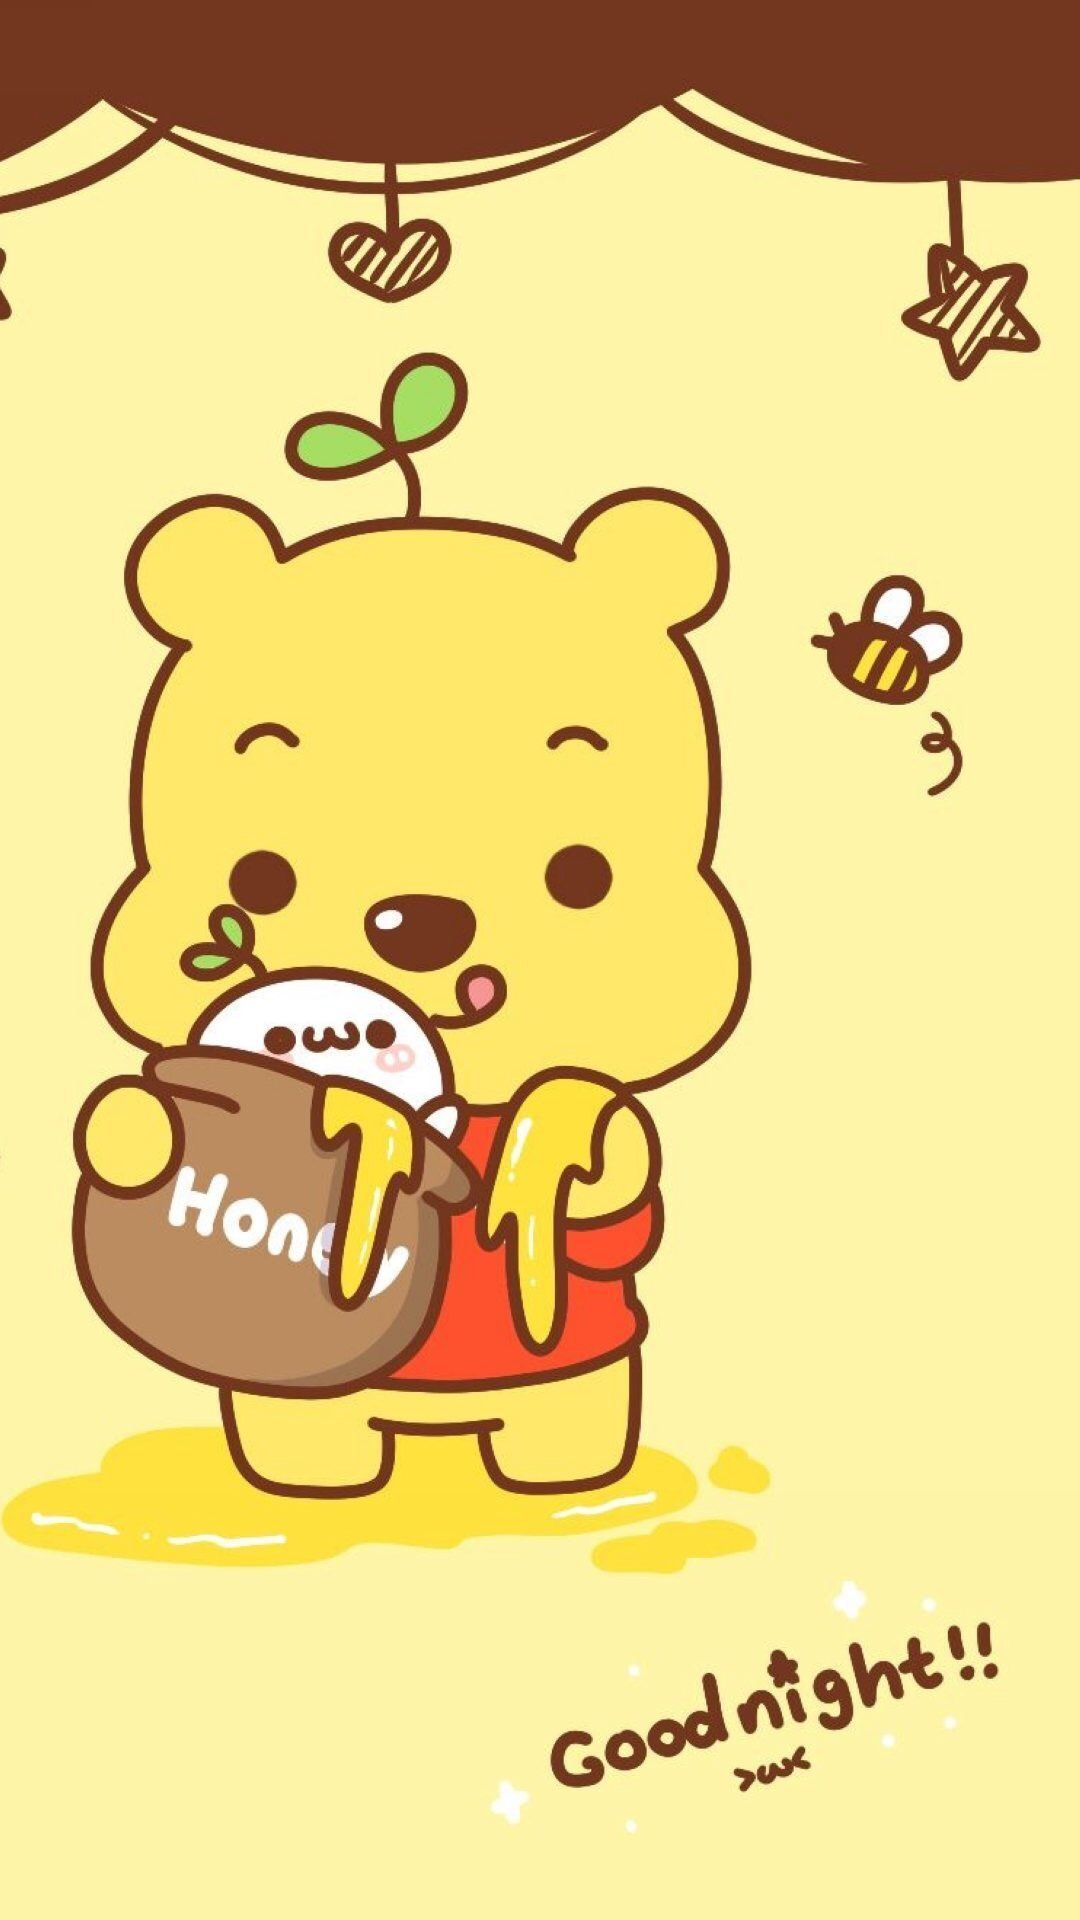 Aesthetic Winnie The Pooh Wallpaper Download Winnie The Pooh Drawing Winnie The Pooh Background Cute Winnie The Pooh